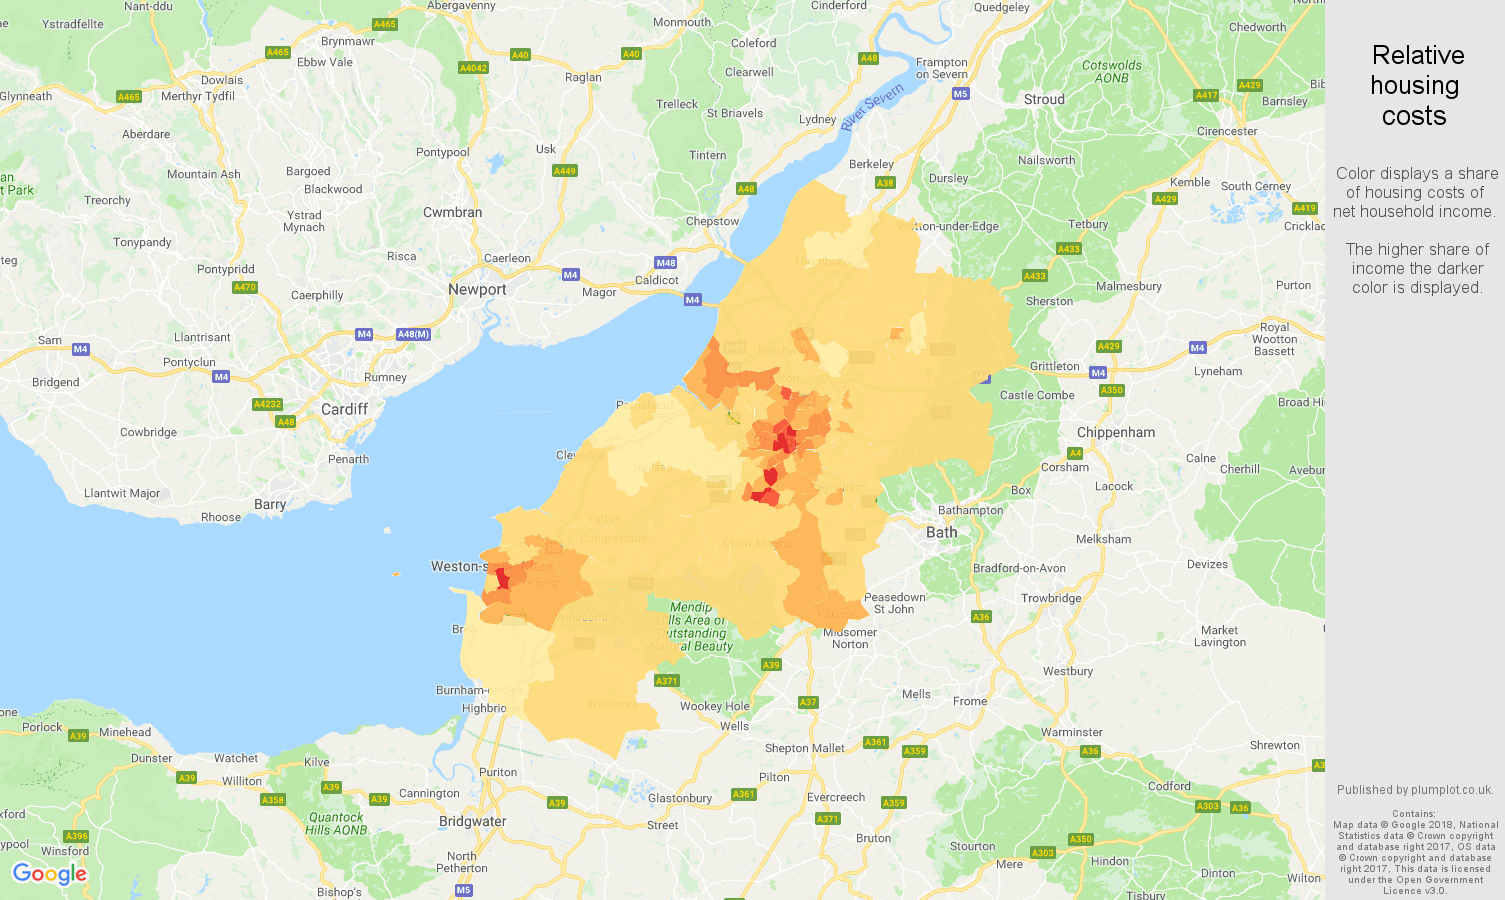 Bristol relative housing costs map